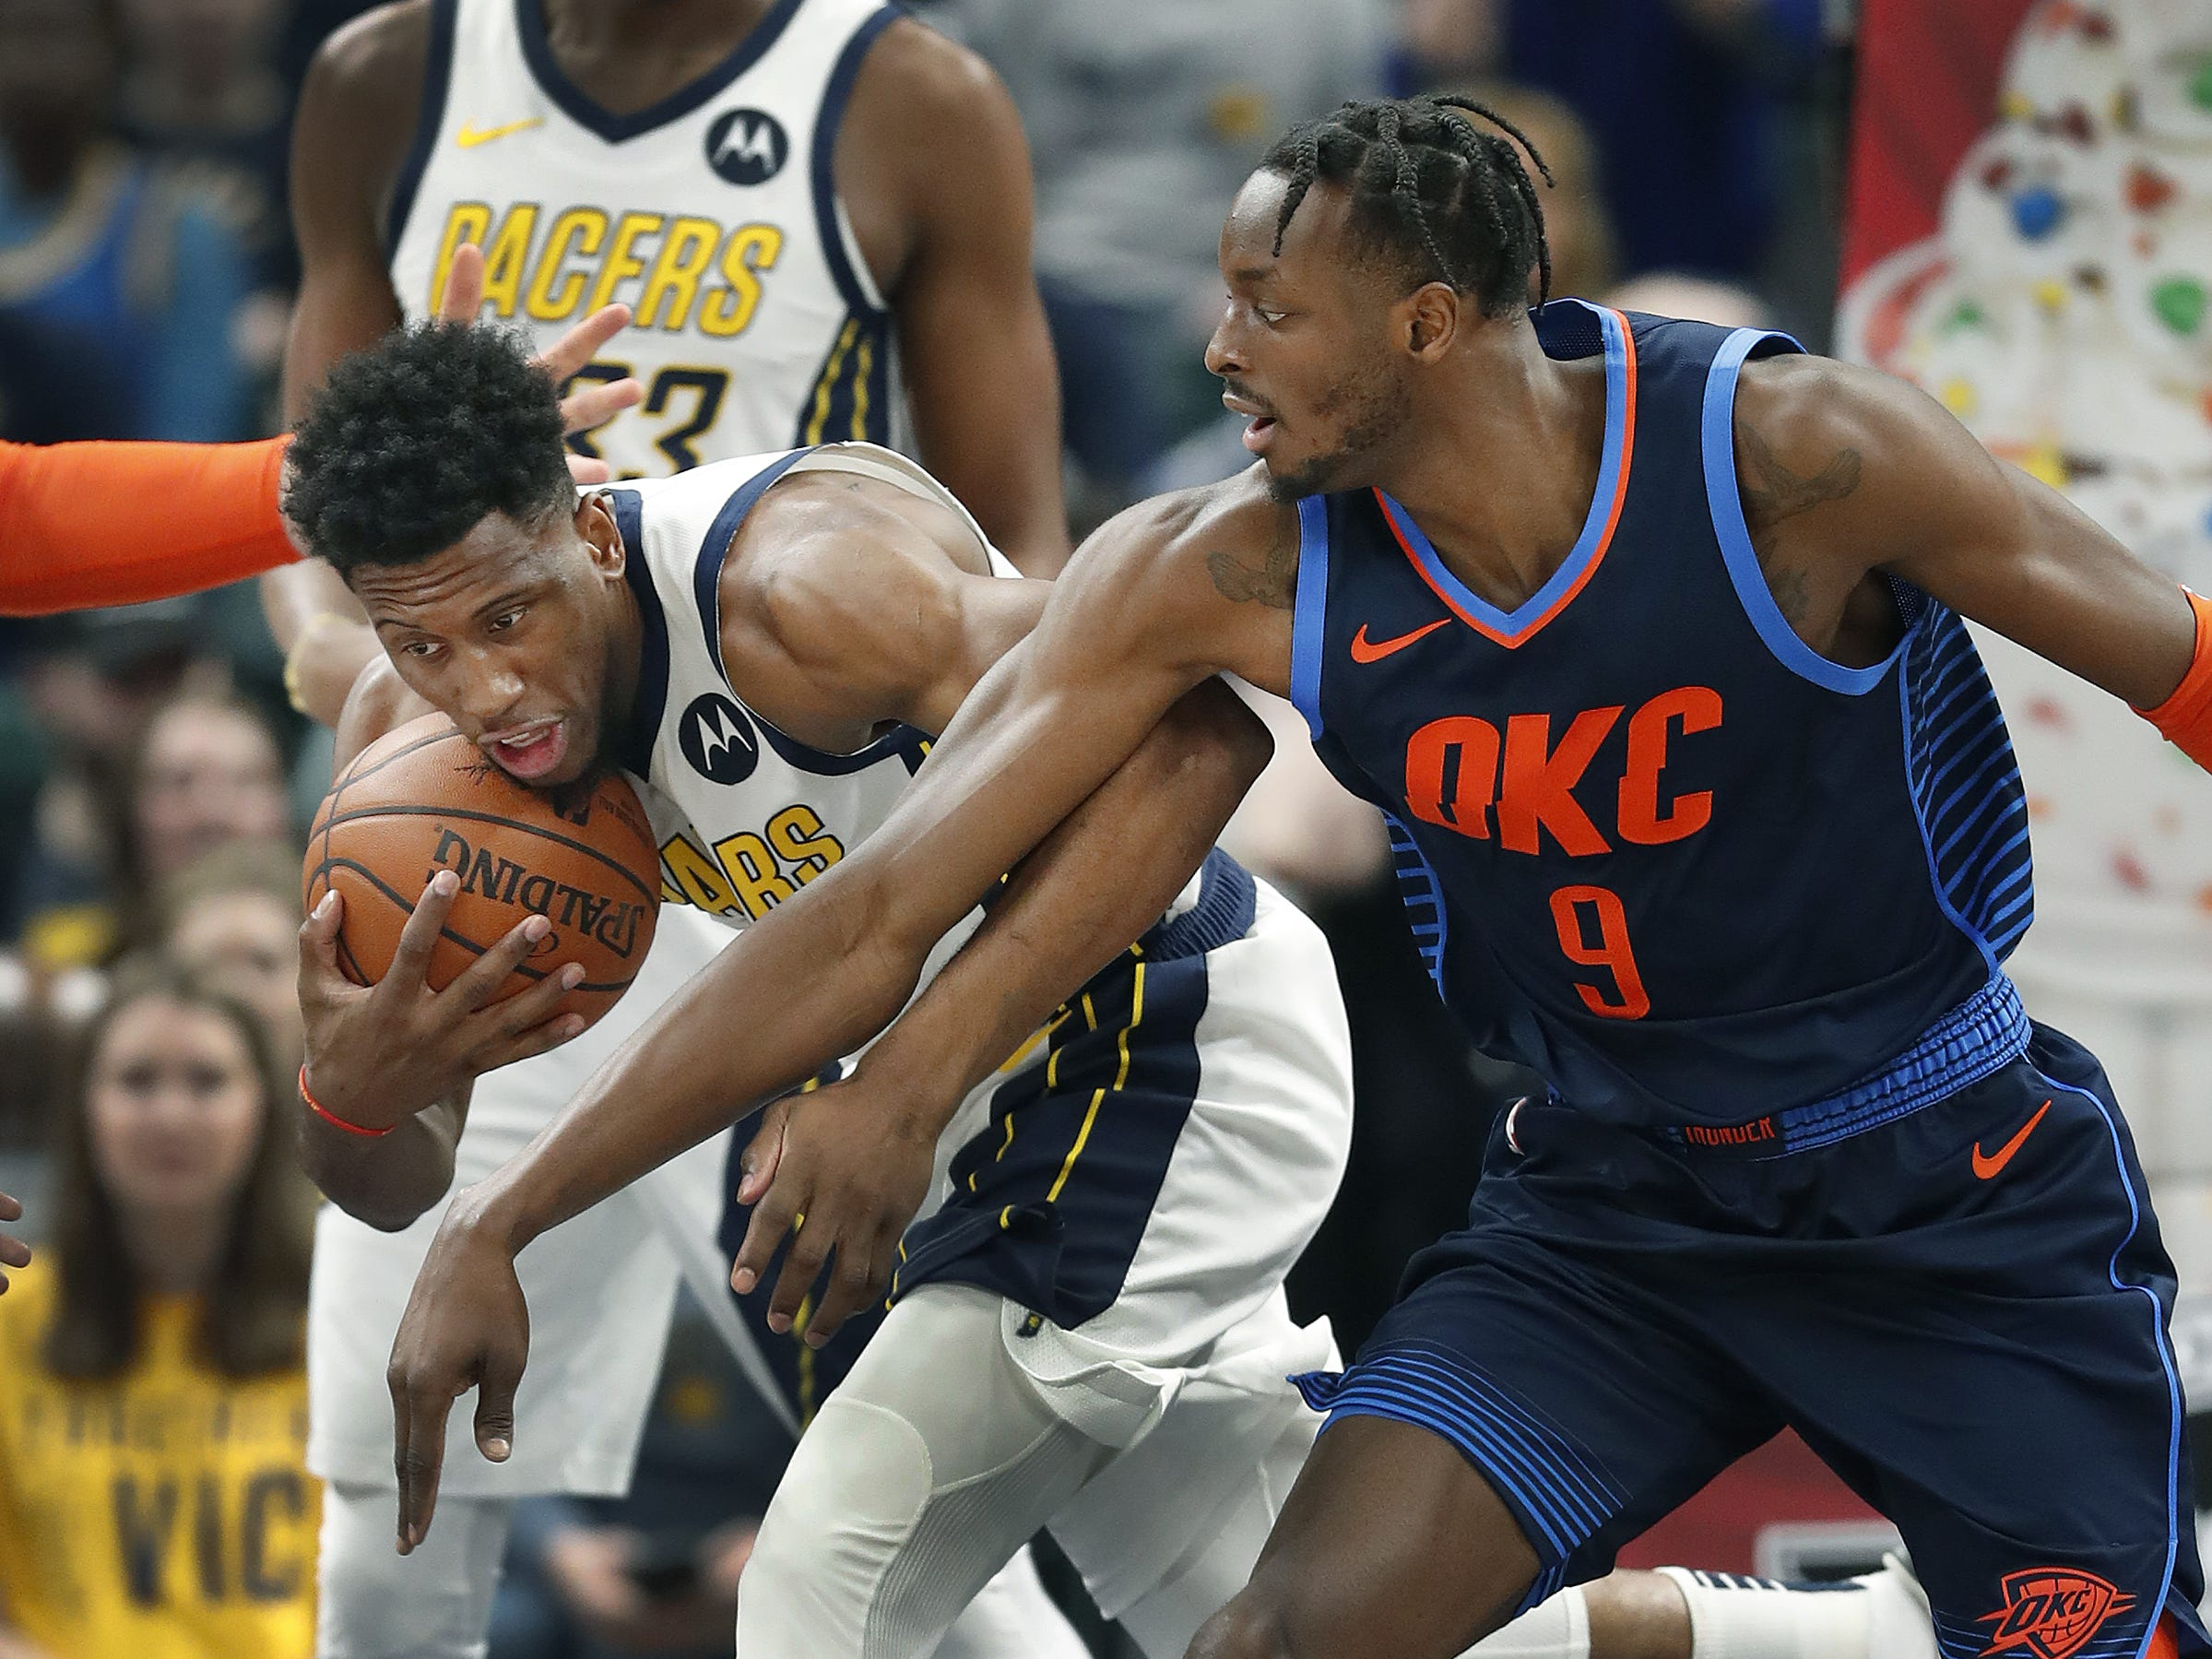 Indiana Pacers forward Thaddeus Young (21) pulls a rebound away from Oklahoma City Thunder forward Jerami Grant (9) in the first half of their game at Bankers Life Fieldhouse on Thursday, Mar. 14, 2019.